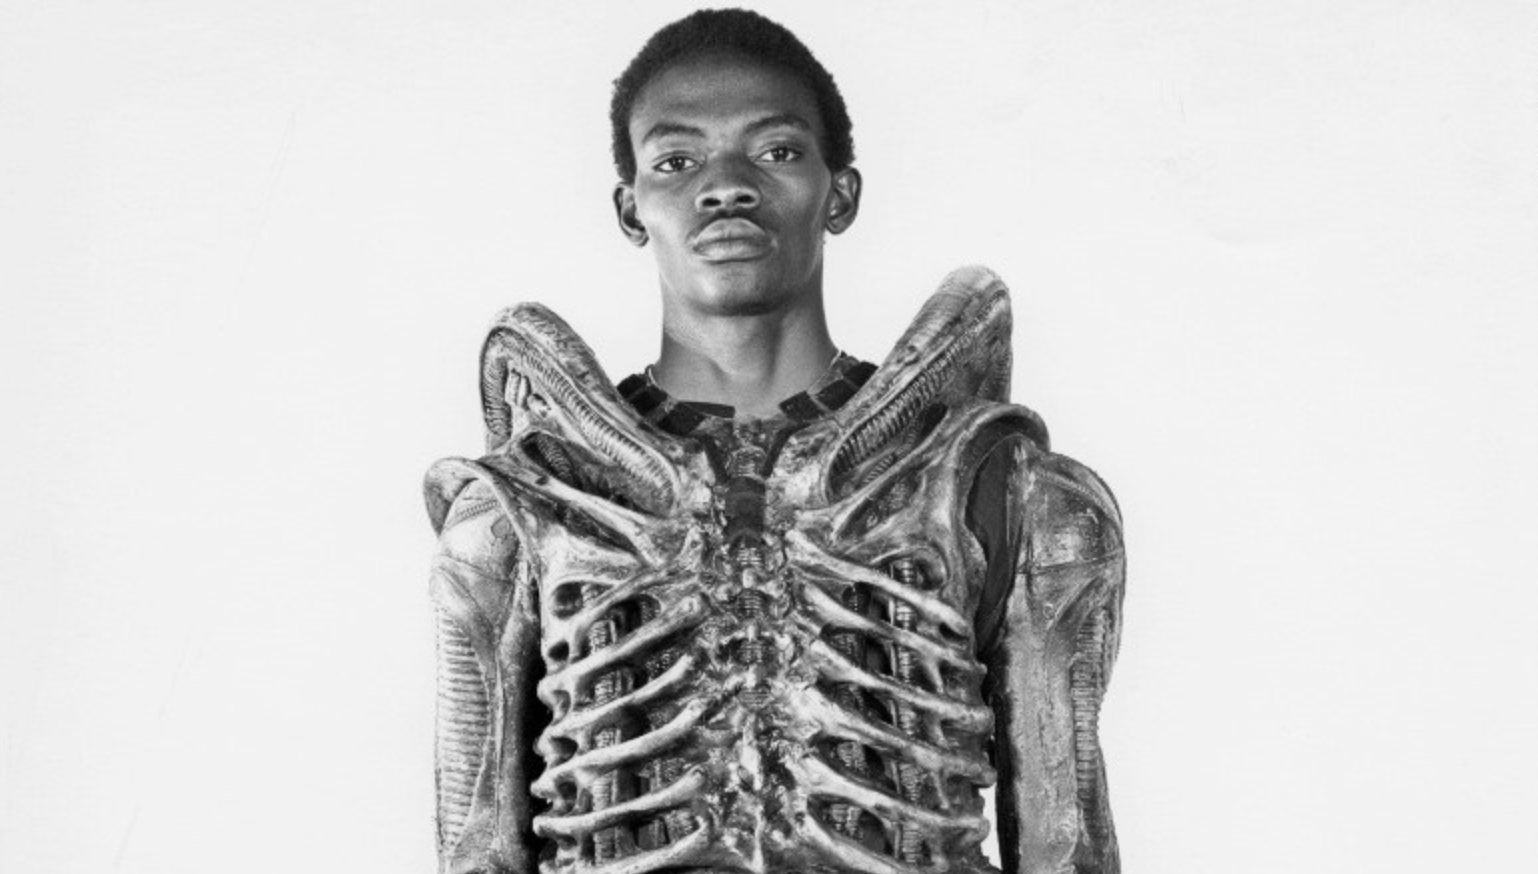 READ >> Bolaji Badejo: The Nigerian giant who played 'Alien'